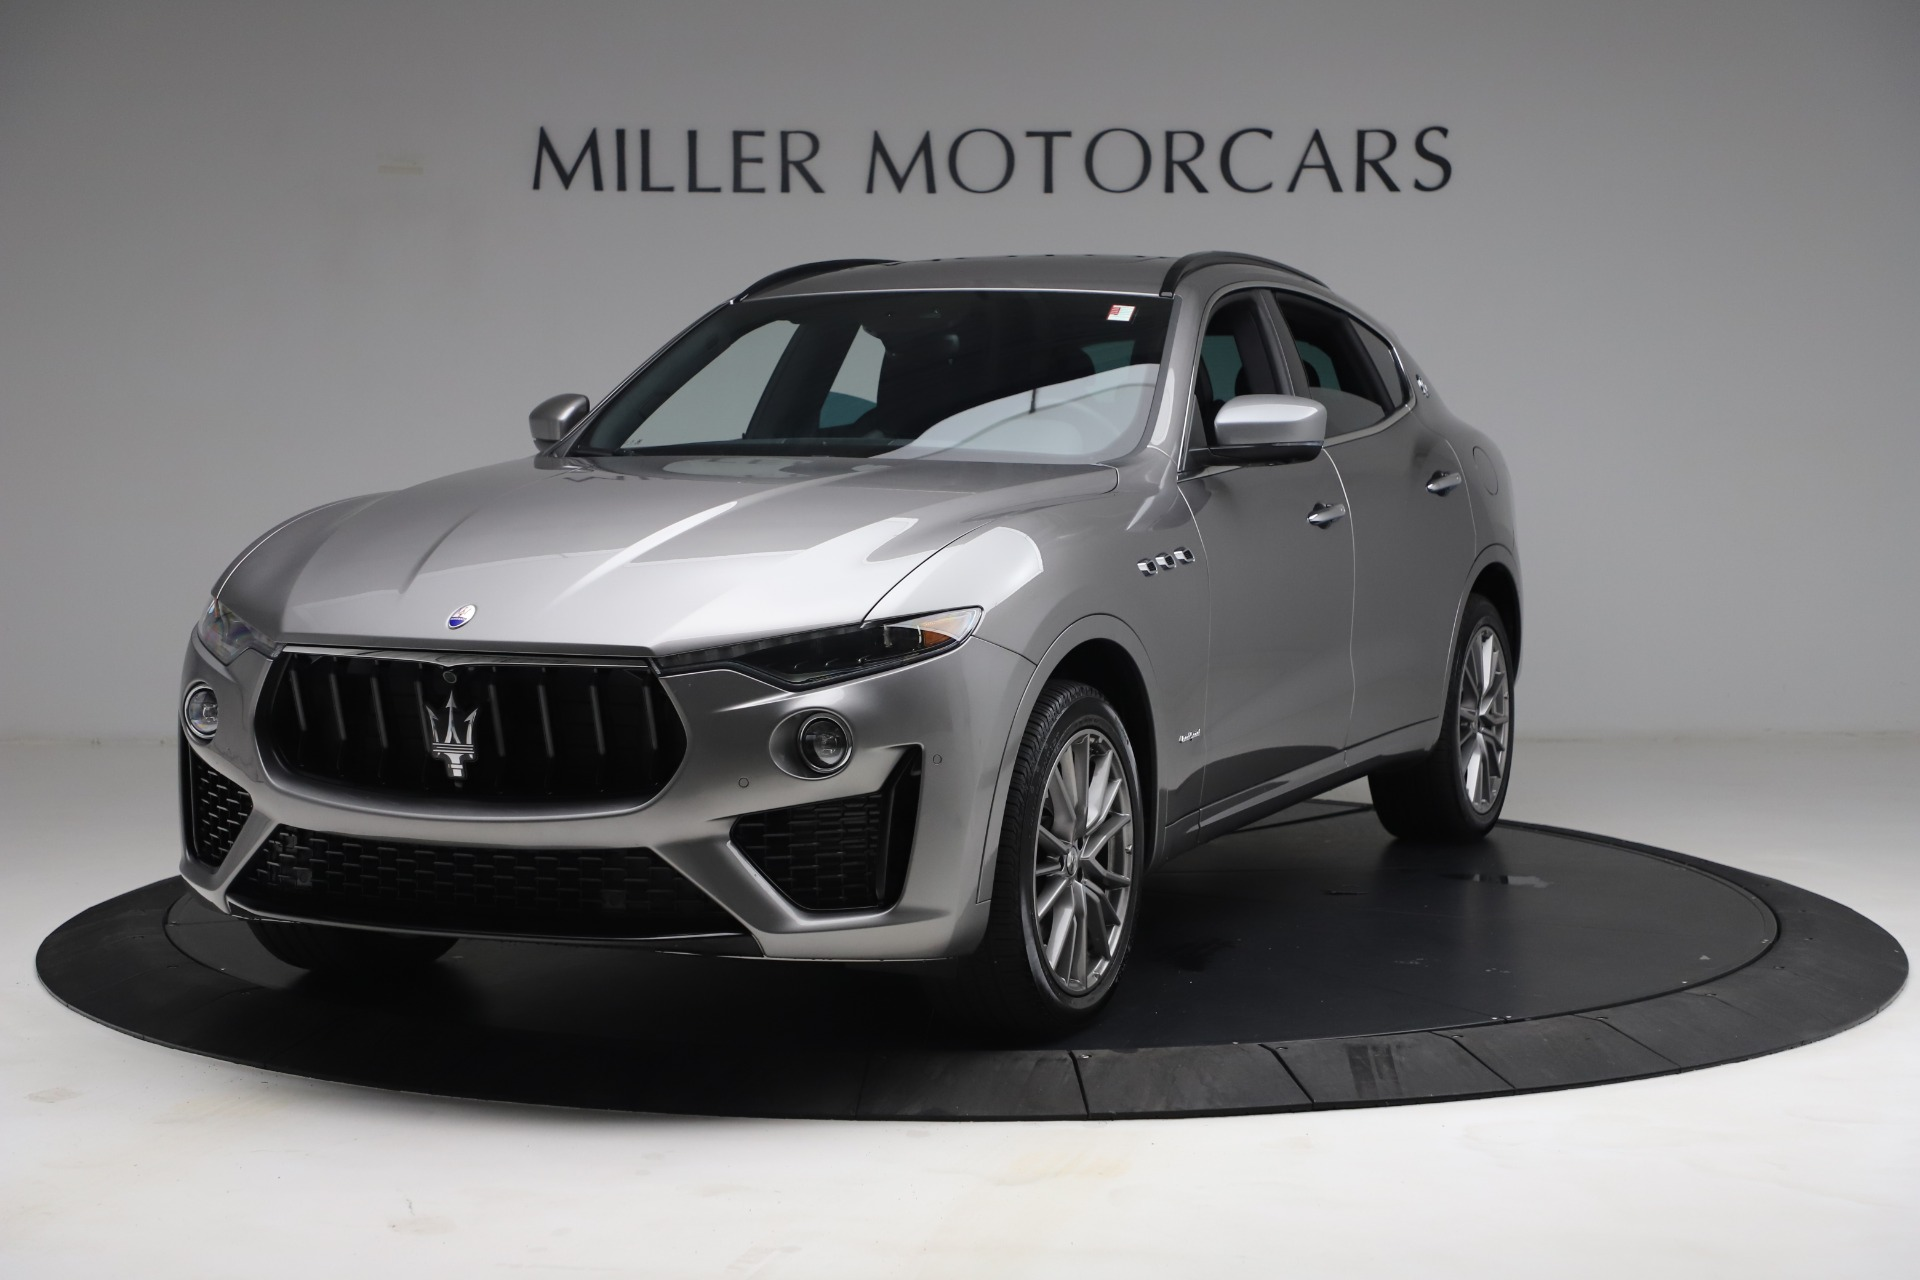 New 2021 Maserati Levante GranSport for sale $73,900 at Rolls-Royce Motor Cars Greenwich in Greenwich CT 06830 1